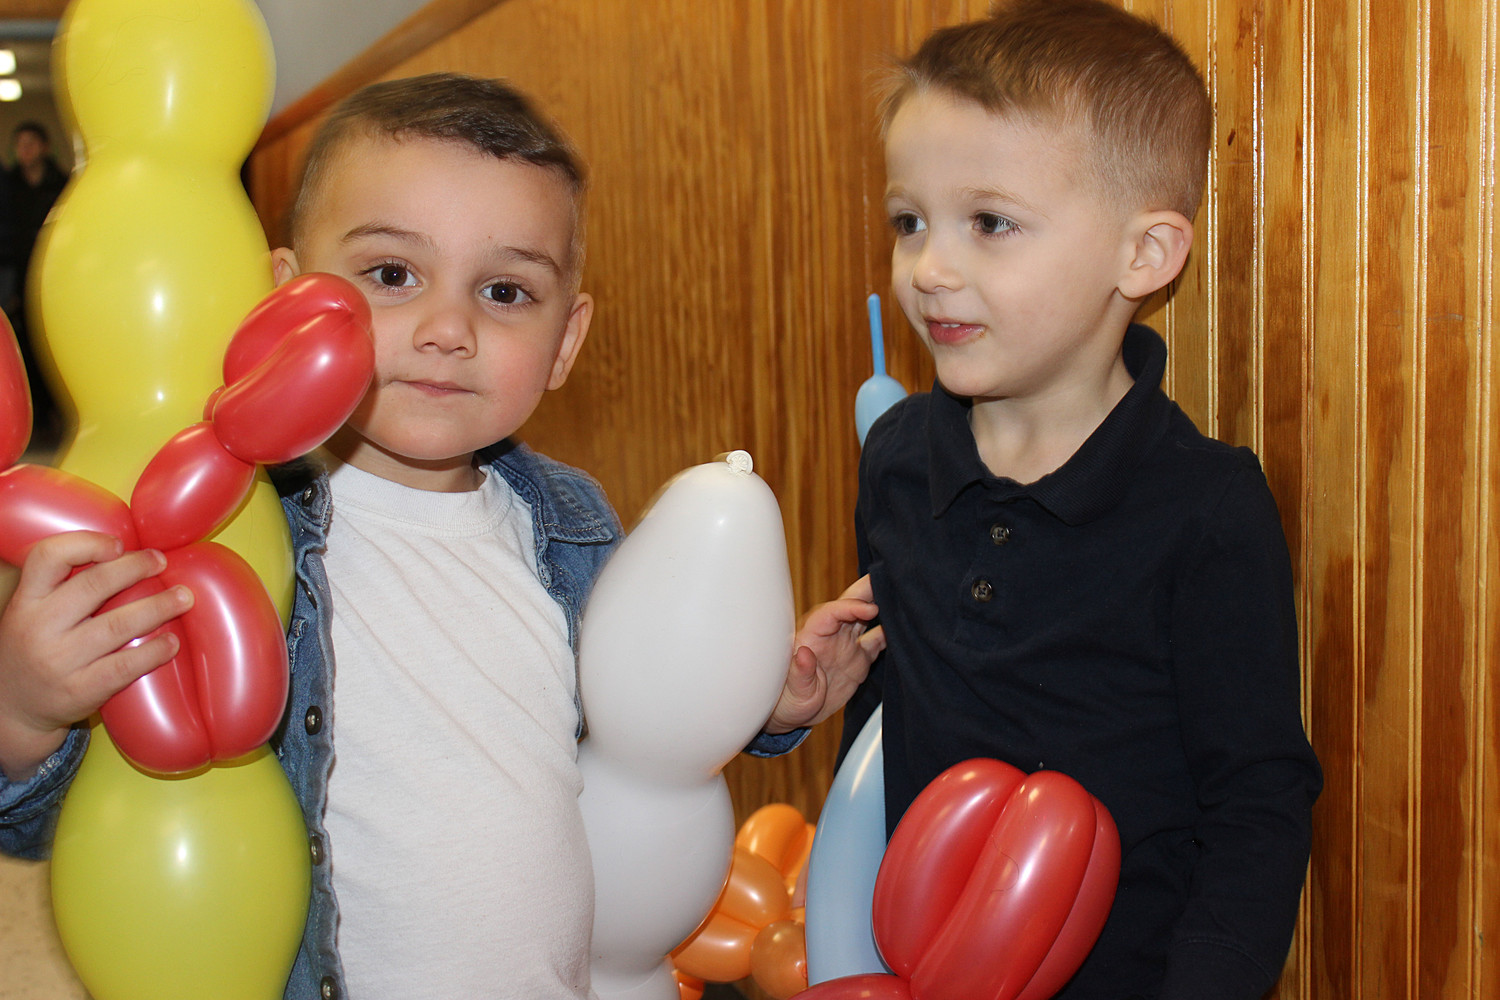 Christian Krug, 2, and his cousin Graham Reinhardt, 3, made sure to get their fill of balloon animals.